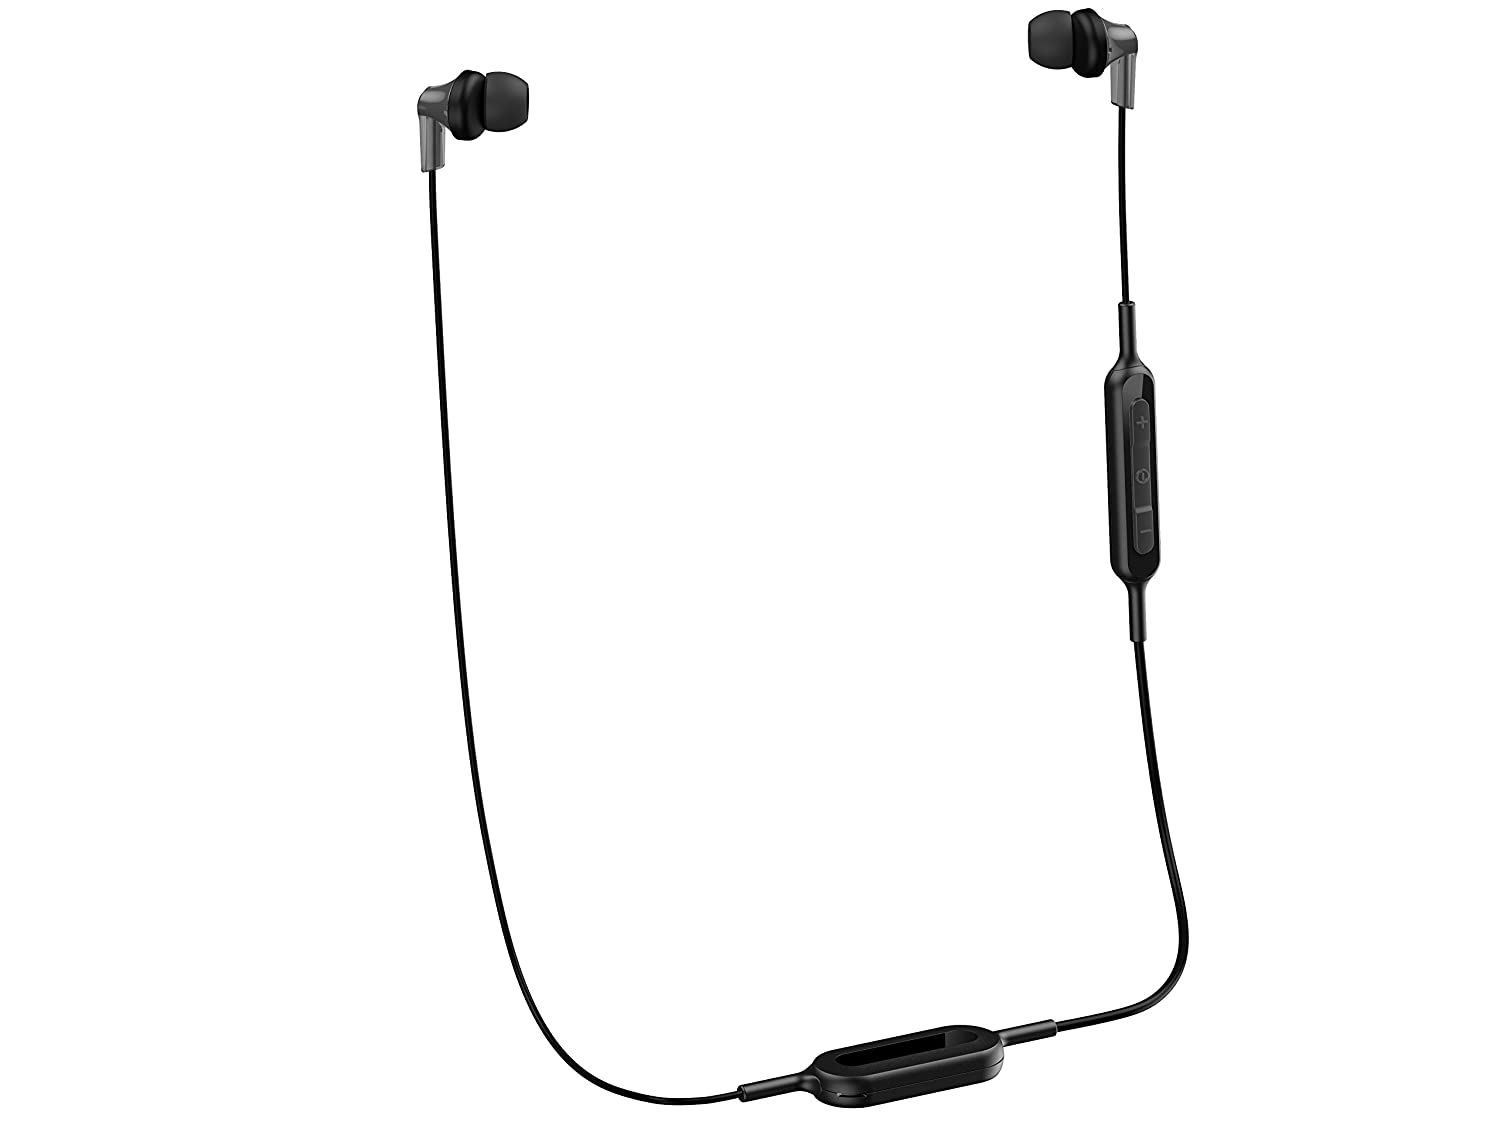 Panasonic Wireless Bluetooth in-Ear Headphones with Sound Mic Controller & Quick Charge Function Black (RP-HJE120B-K)